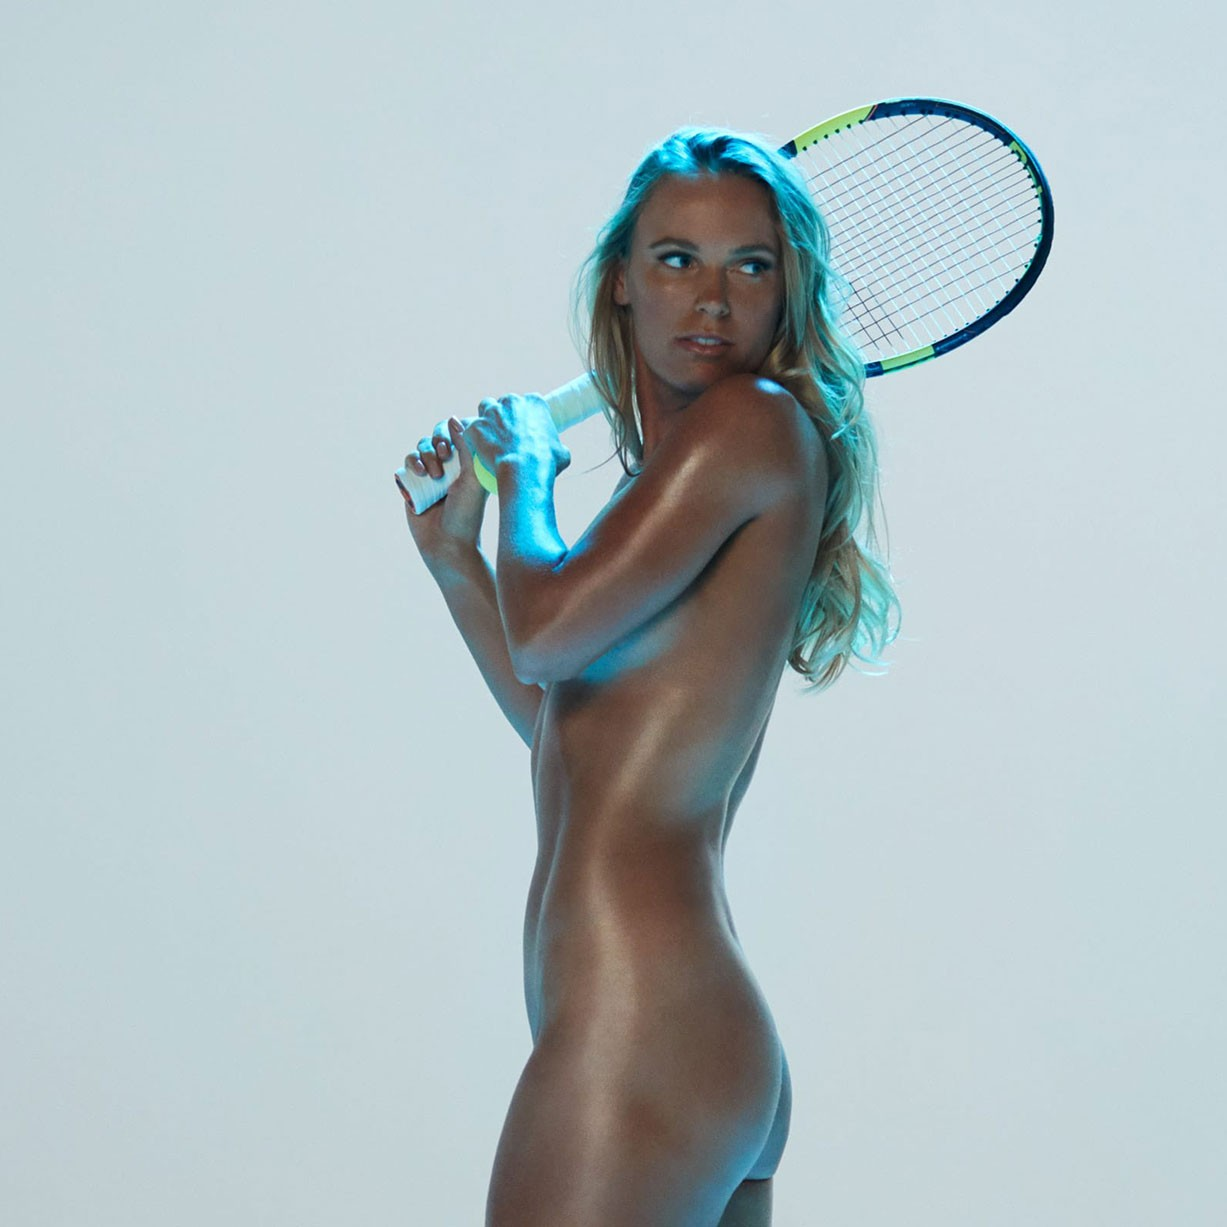 Caroline Wozniacki - ESPN The Body Issue 2017 / photo by Dewey Nicks